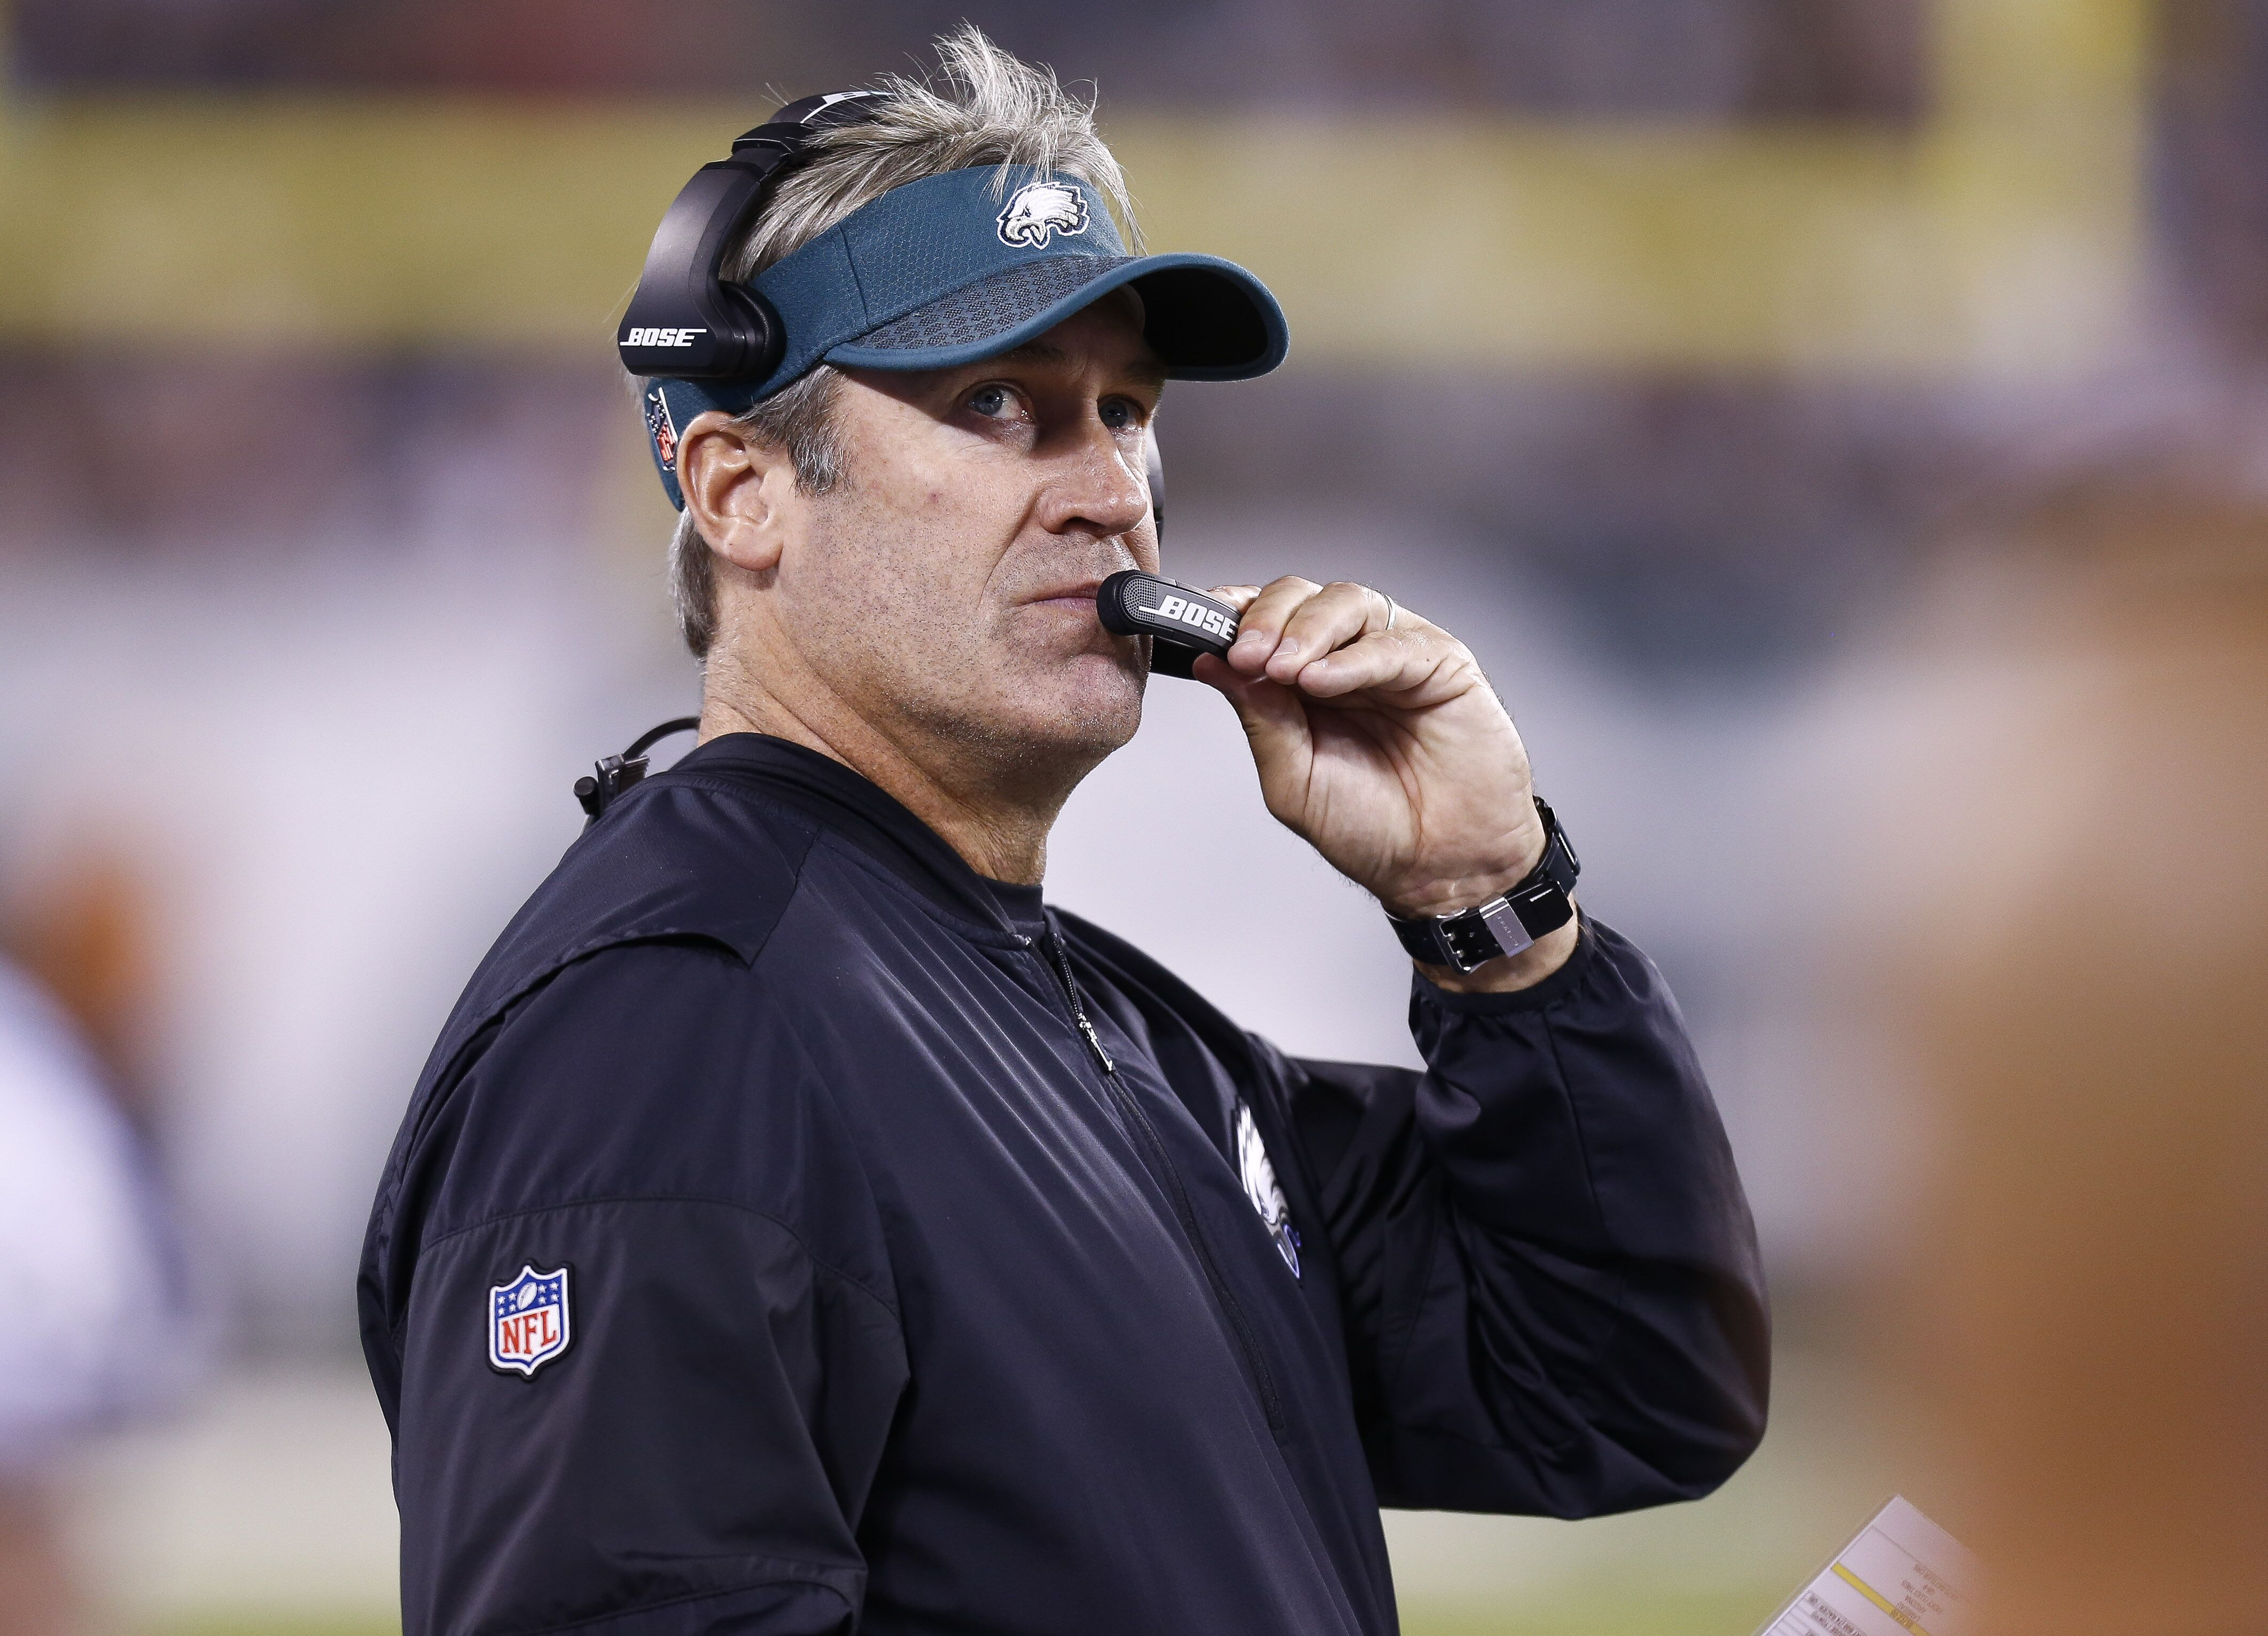 The Philadelphia Eagles announced the hiring of Kansas City Chiefs offensive coordinator Doug Pederson as the teams new head coach on January 18 2016